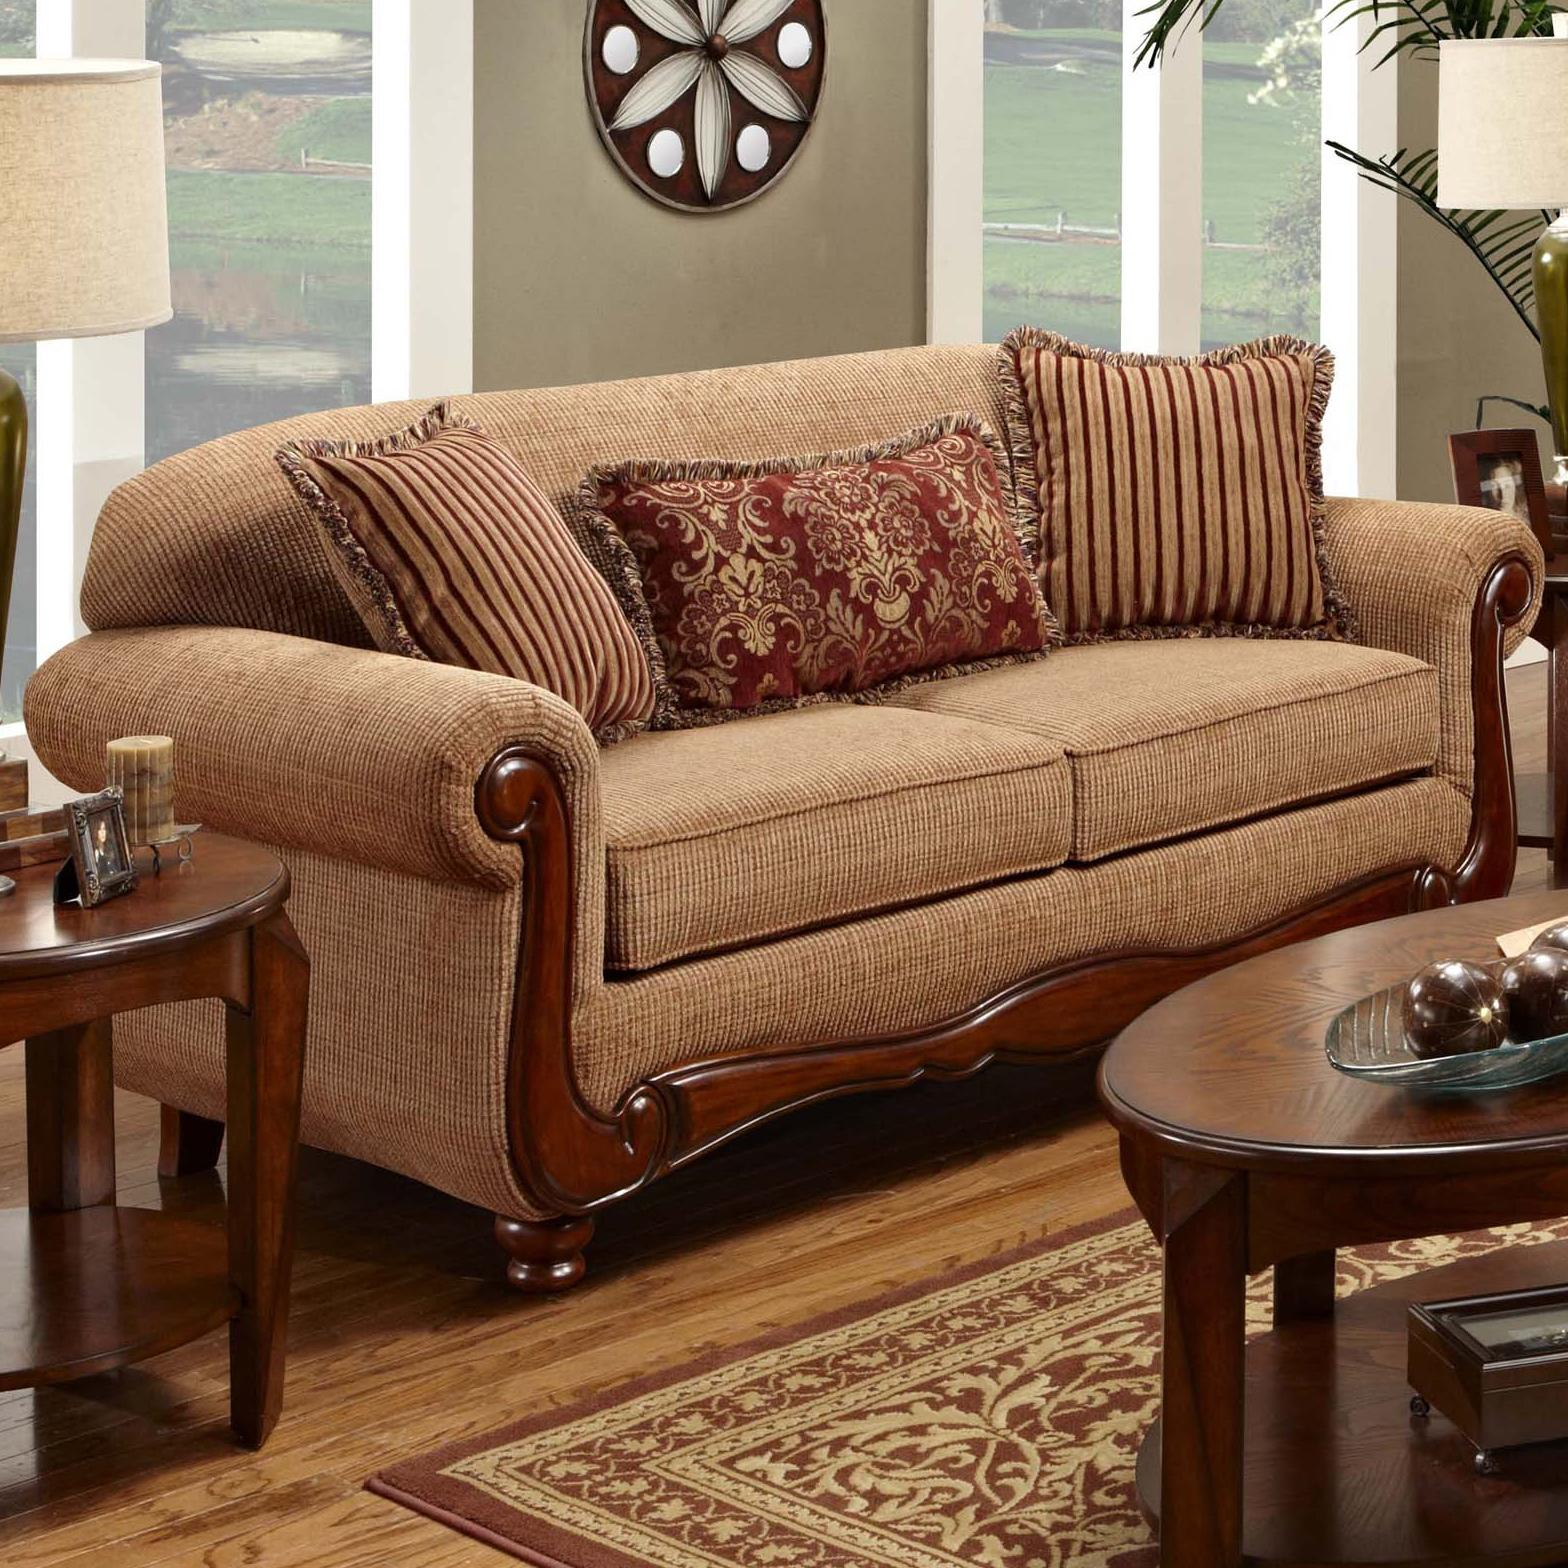 Washington Furniture 1000 Traditional Sofa With Rolled Arms Del Sol Furniture Sofa